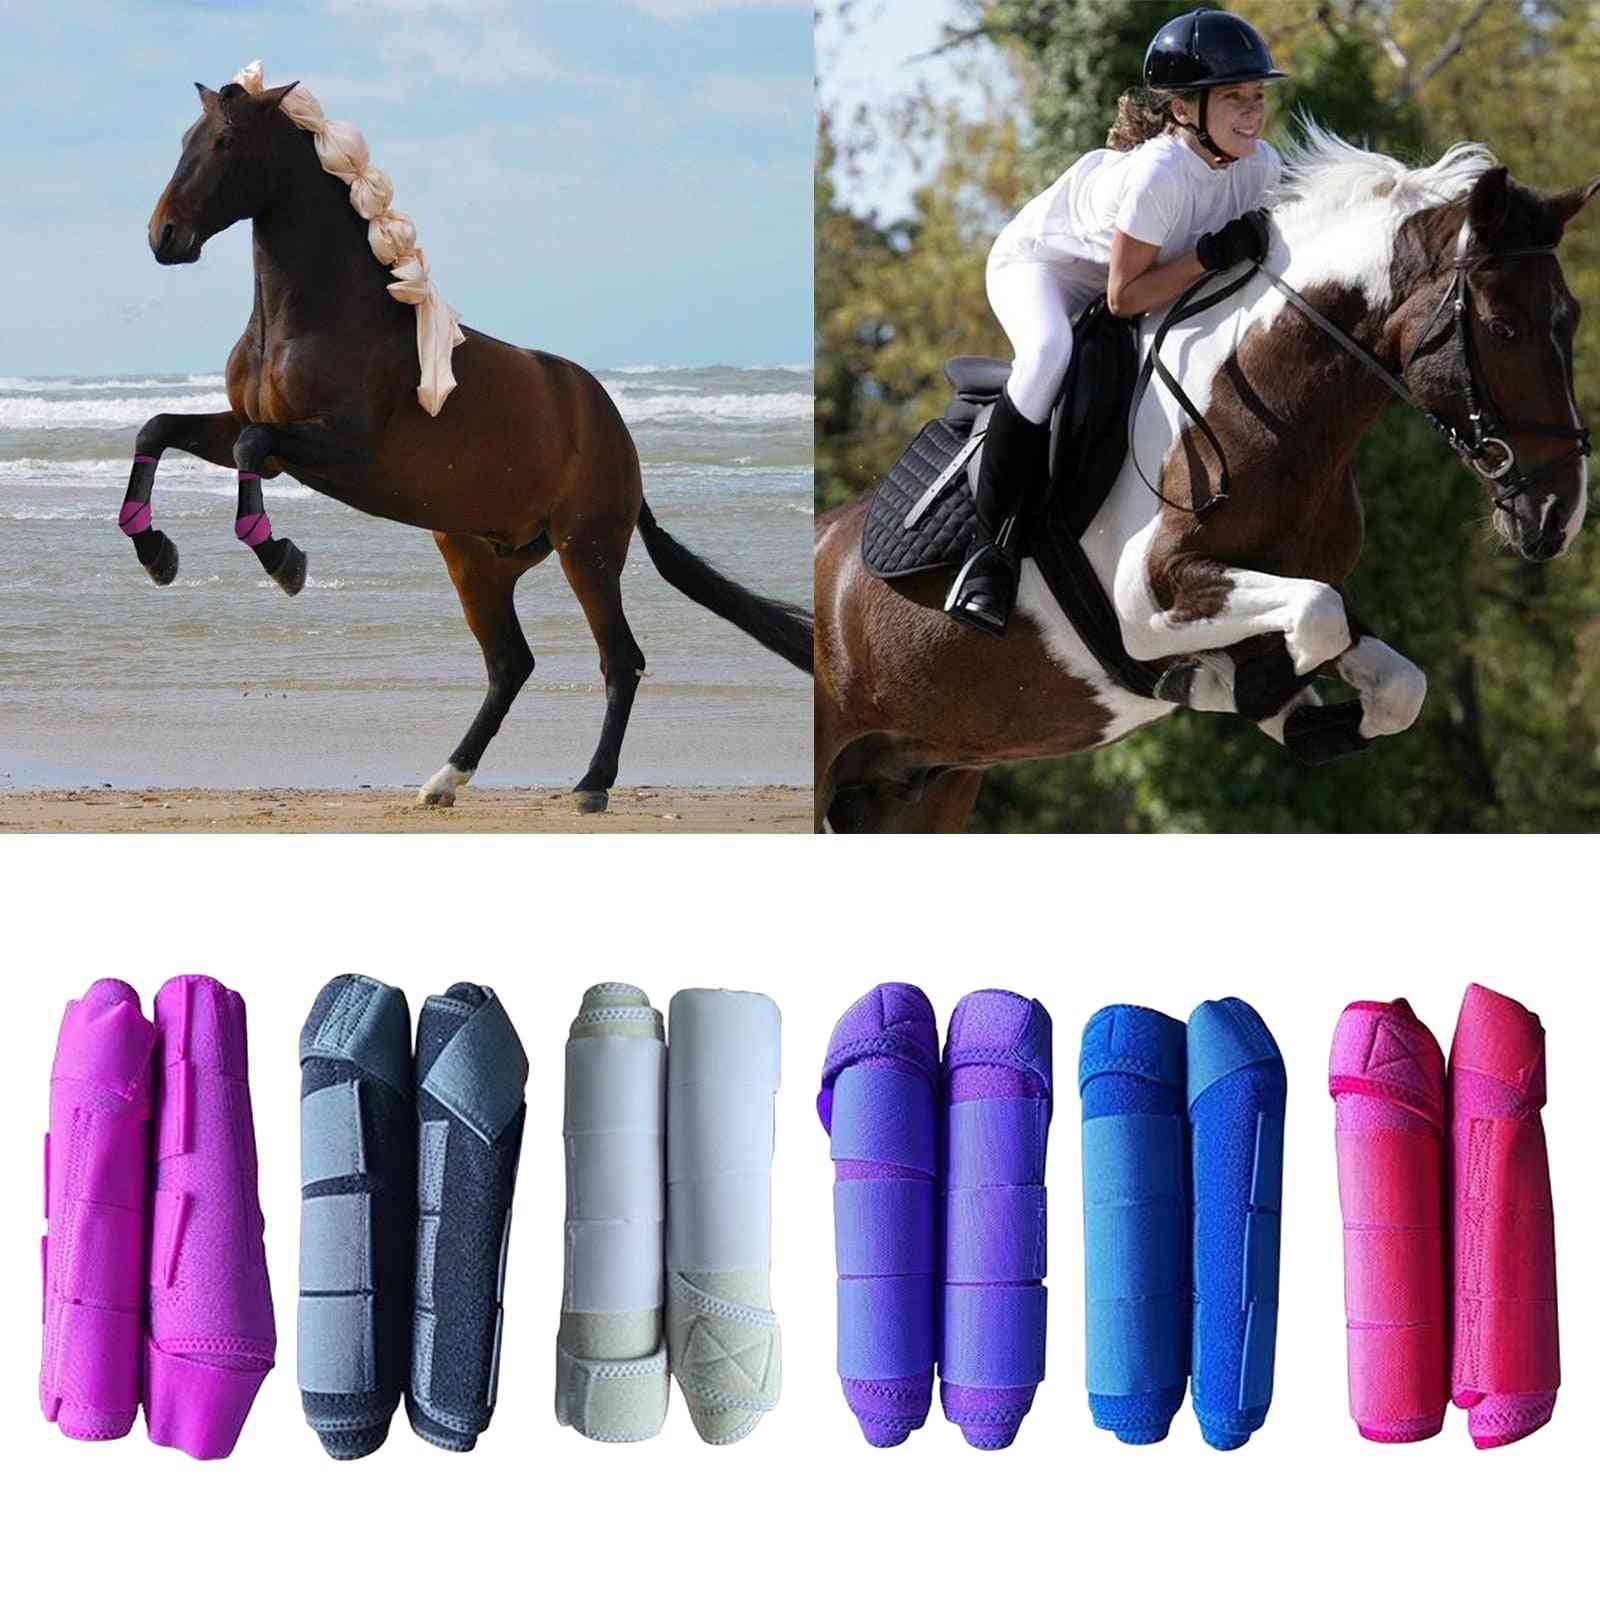 Professional Horse Tendon Boots, Pony Front Leg Wraps Support Protector